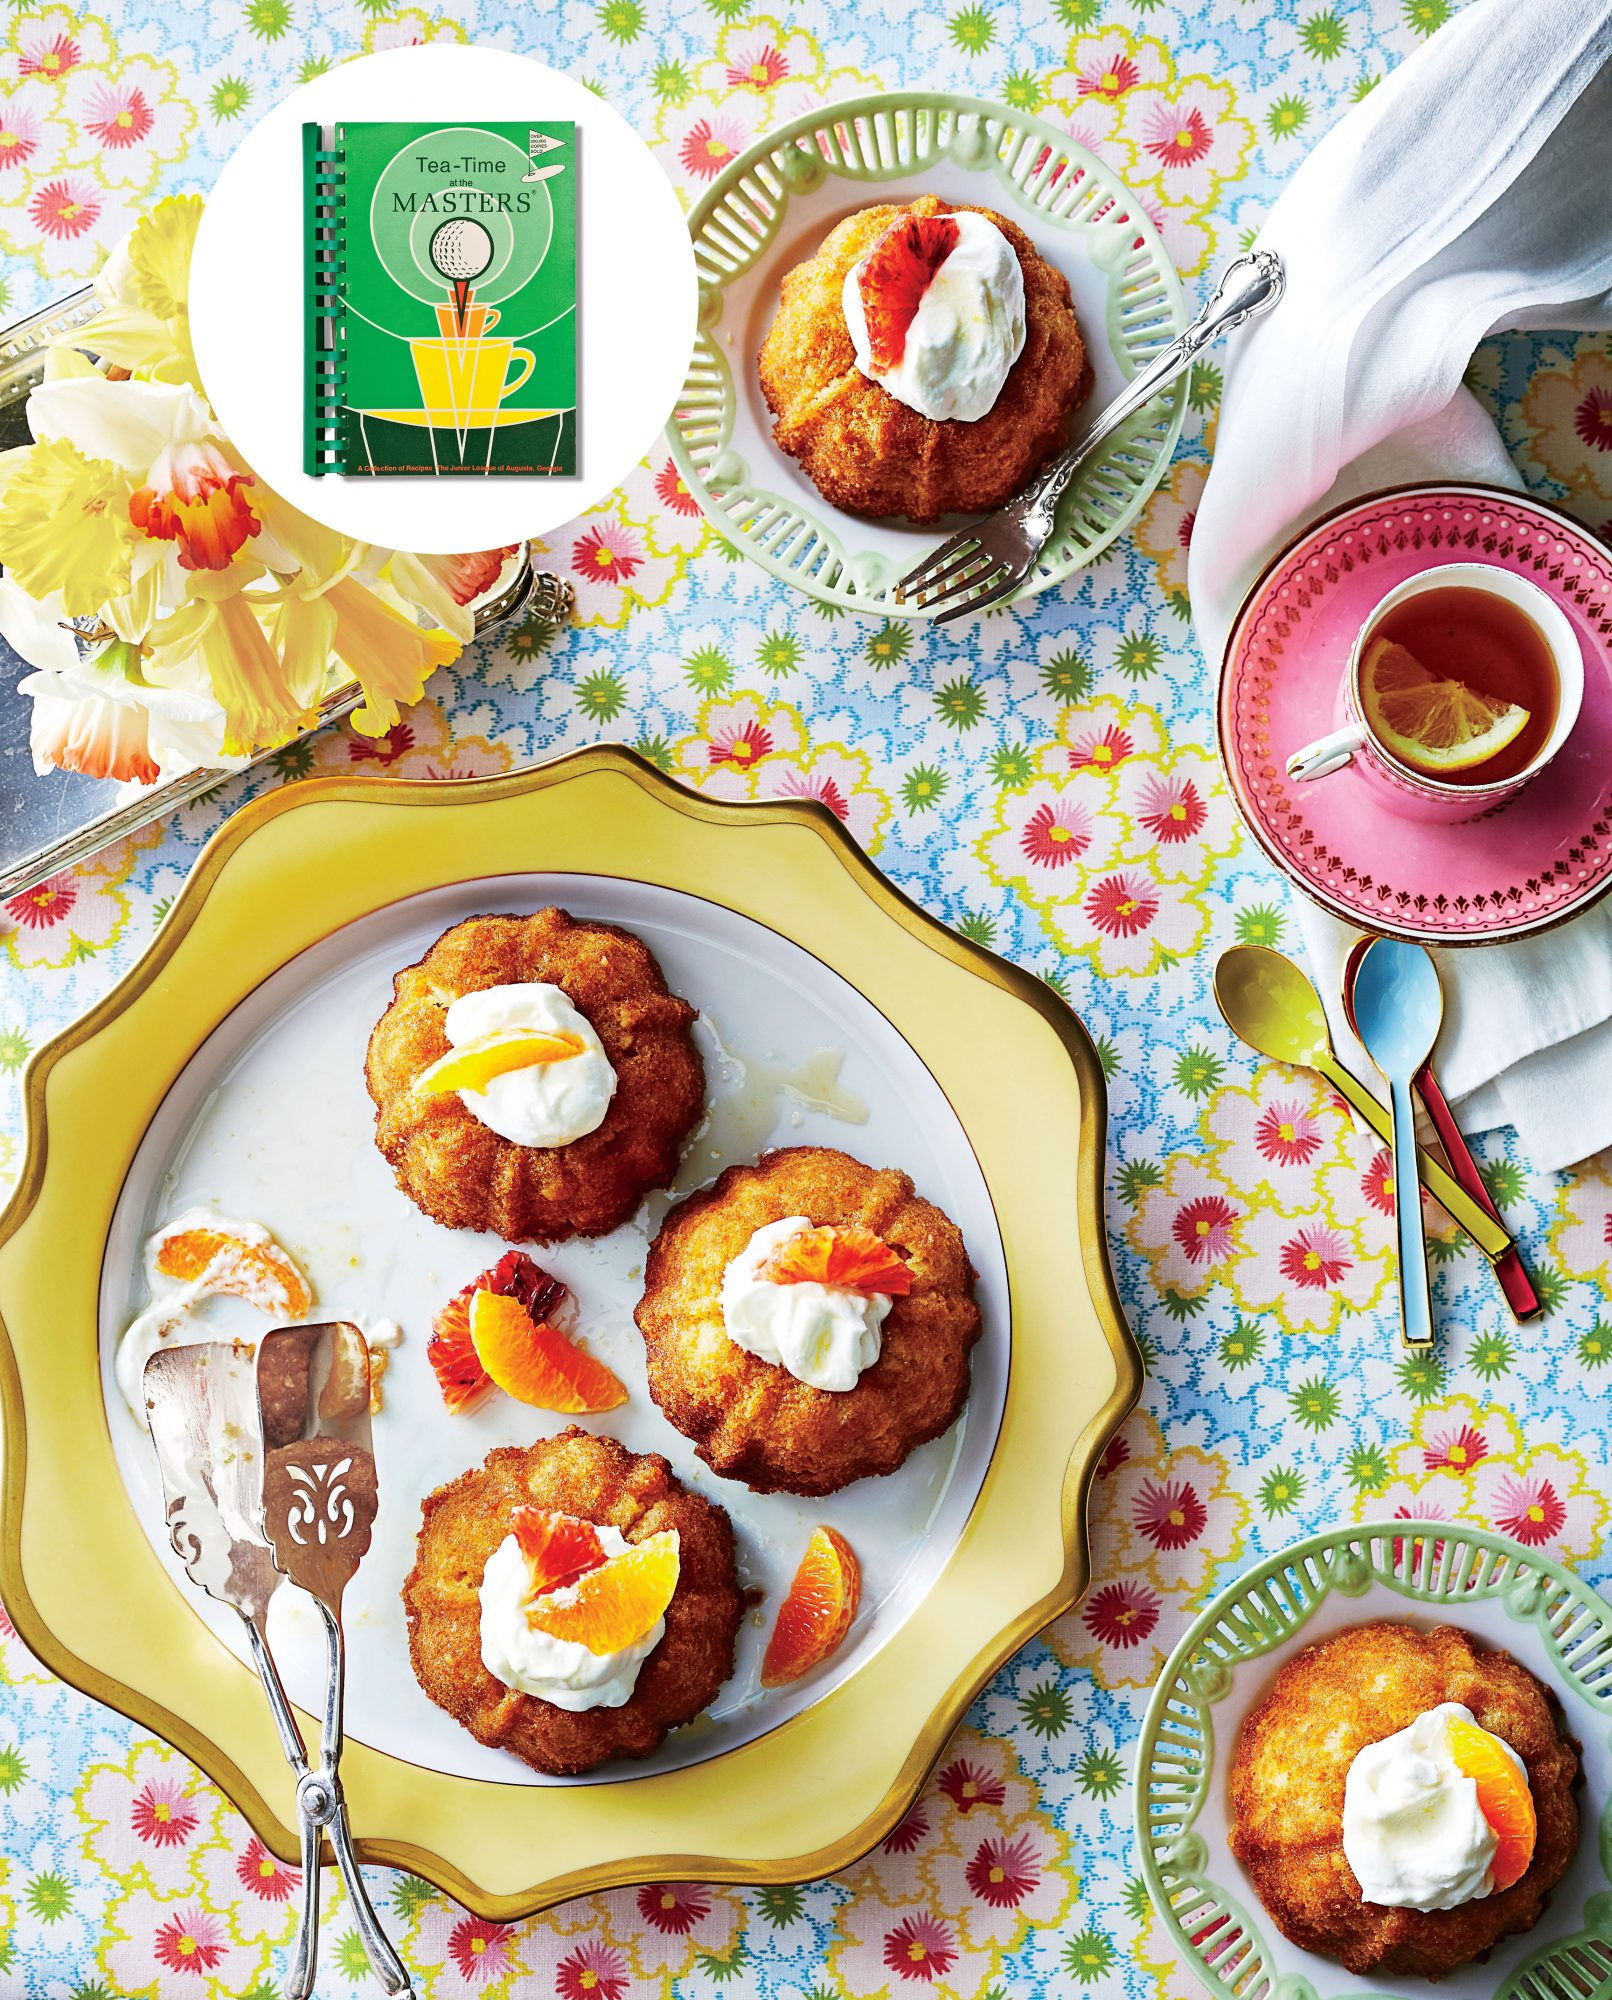 Grand Marnier Cakes from Tea-Time at the Masters